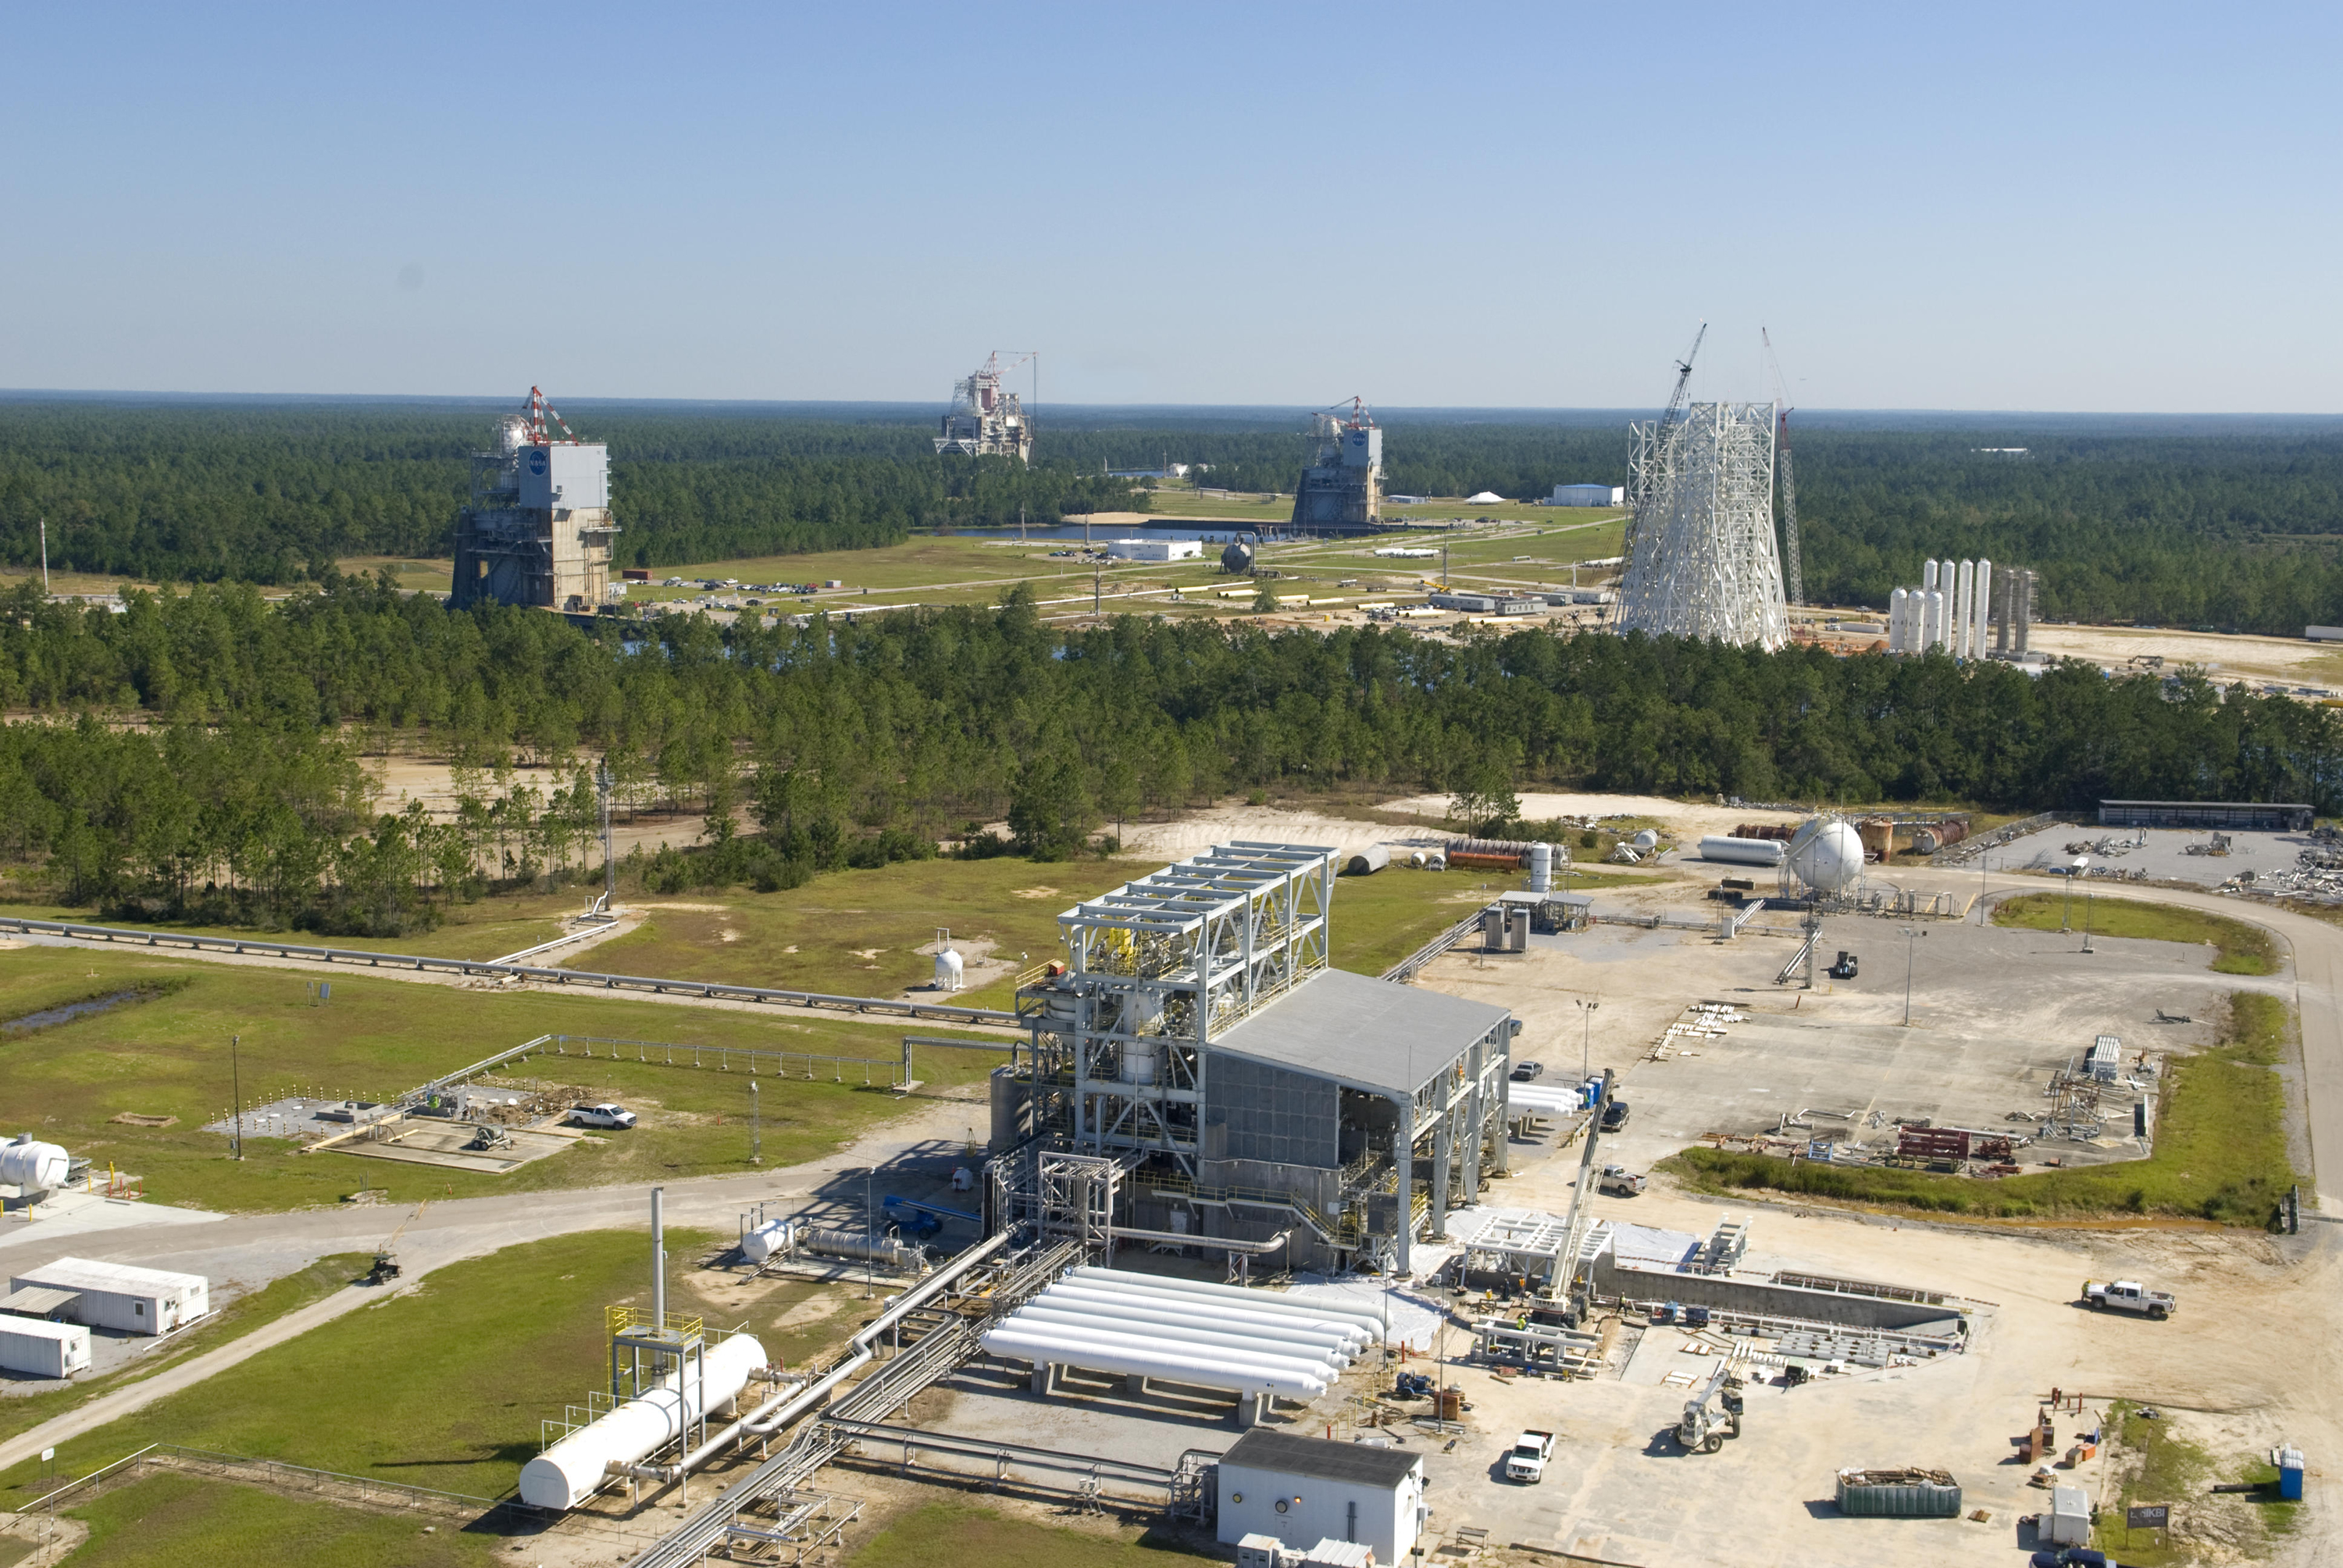 john c stennis space center  wikipedia - an aerial photo shows all three nasa stennis space center (ssc) testcomplexes  the e test complex (foreground) the three a test complexstands (middle)